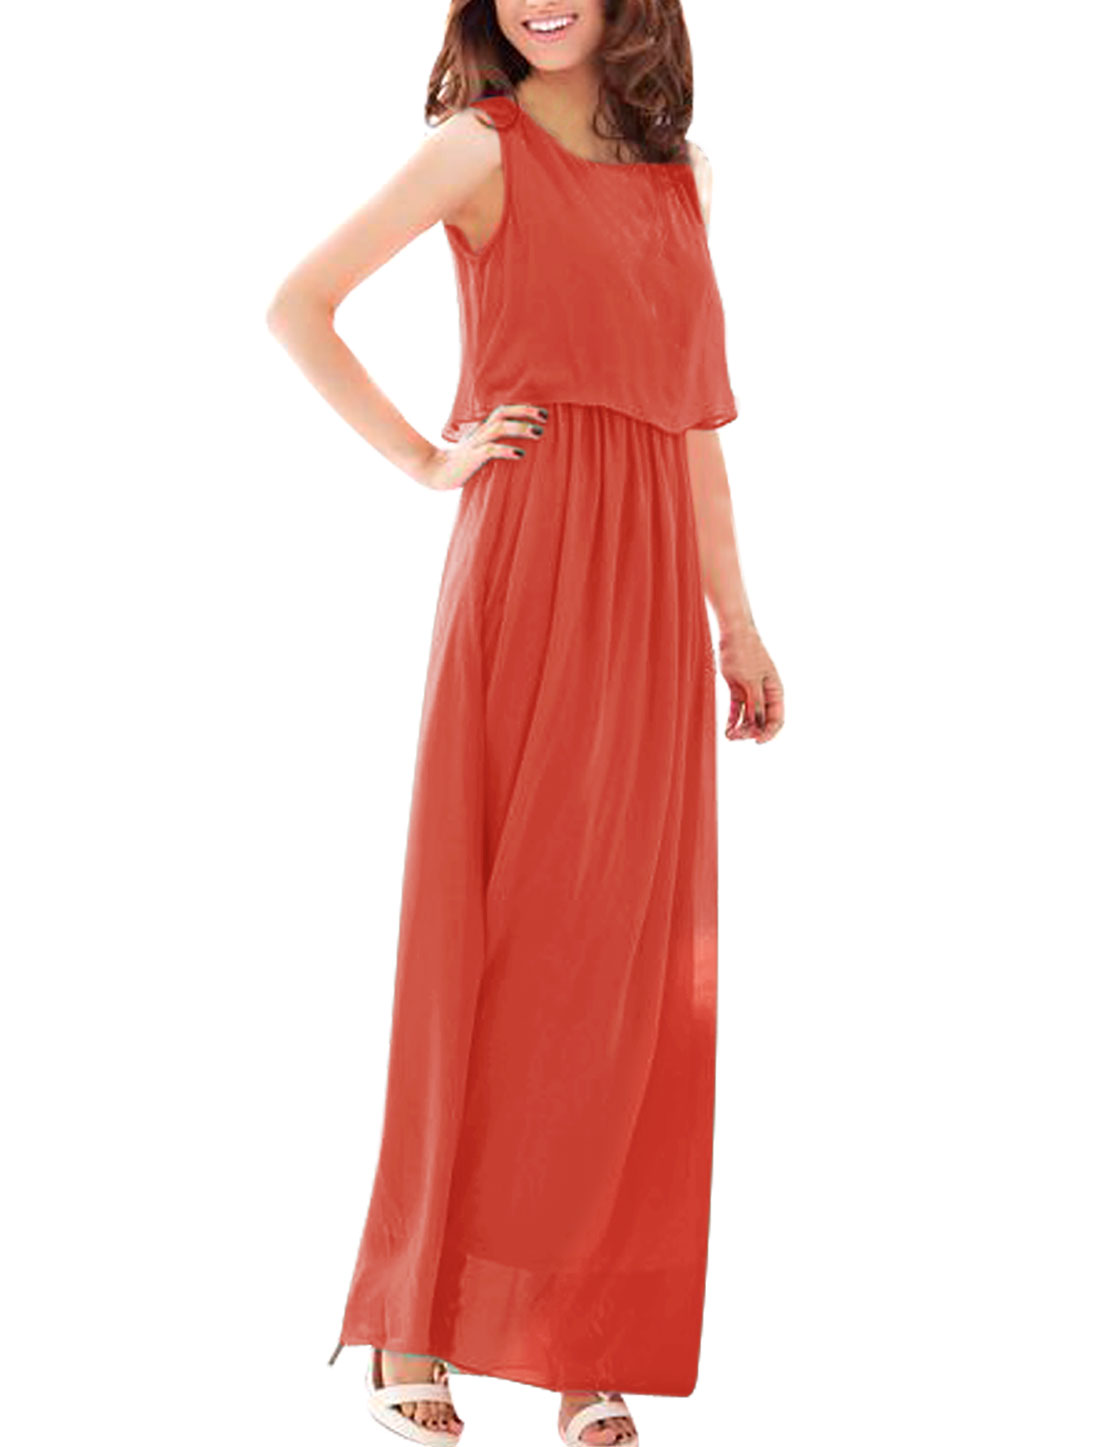 Woman Chic Orange Red Color Elastic Wasit Casual Full Length Dress XS